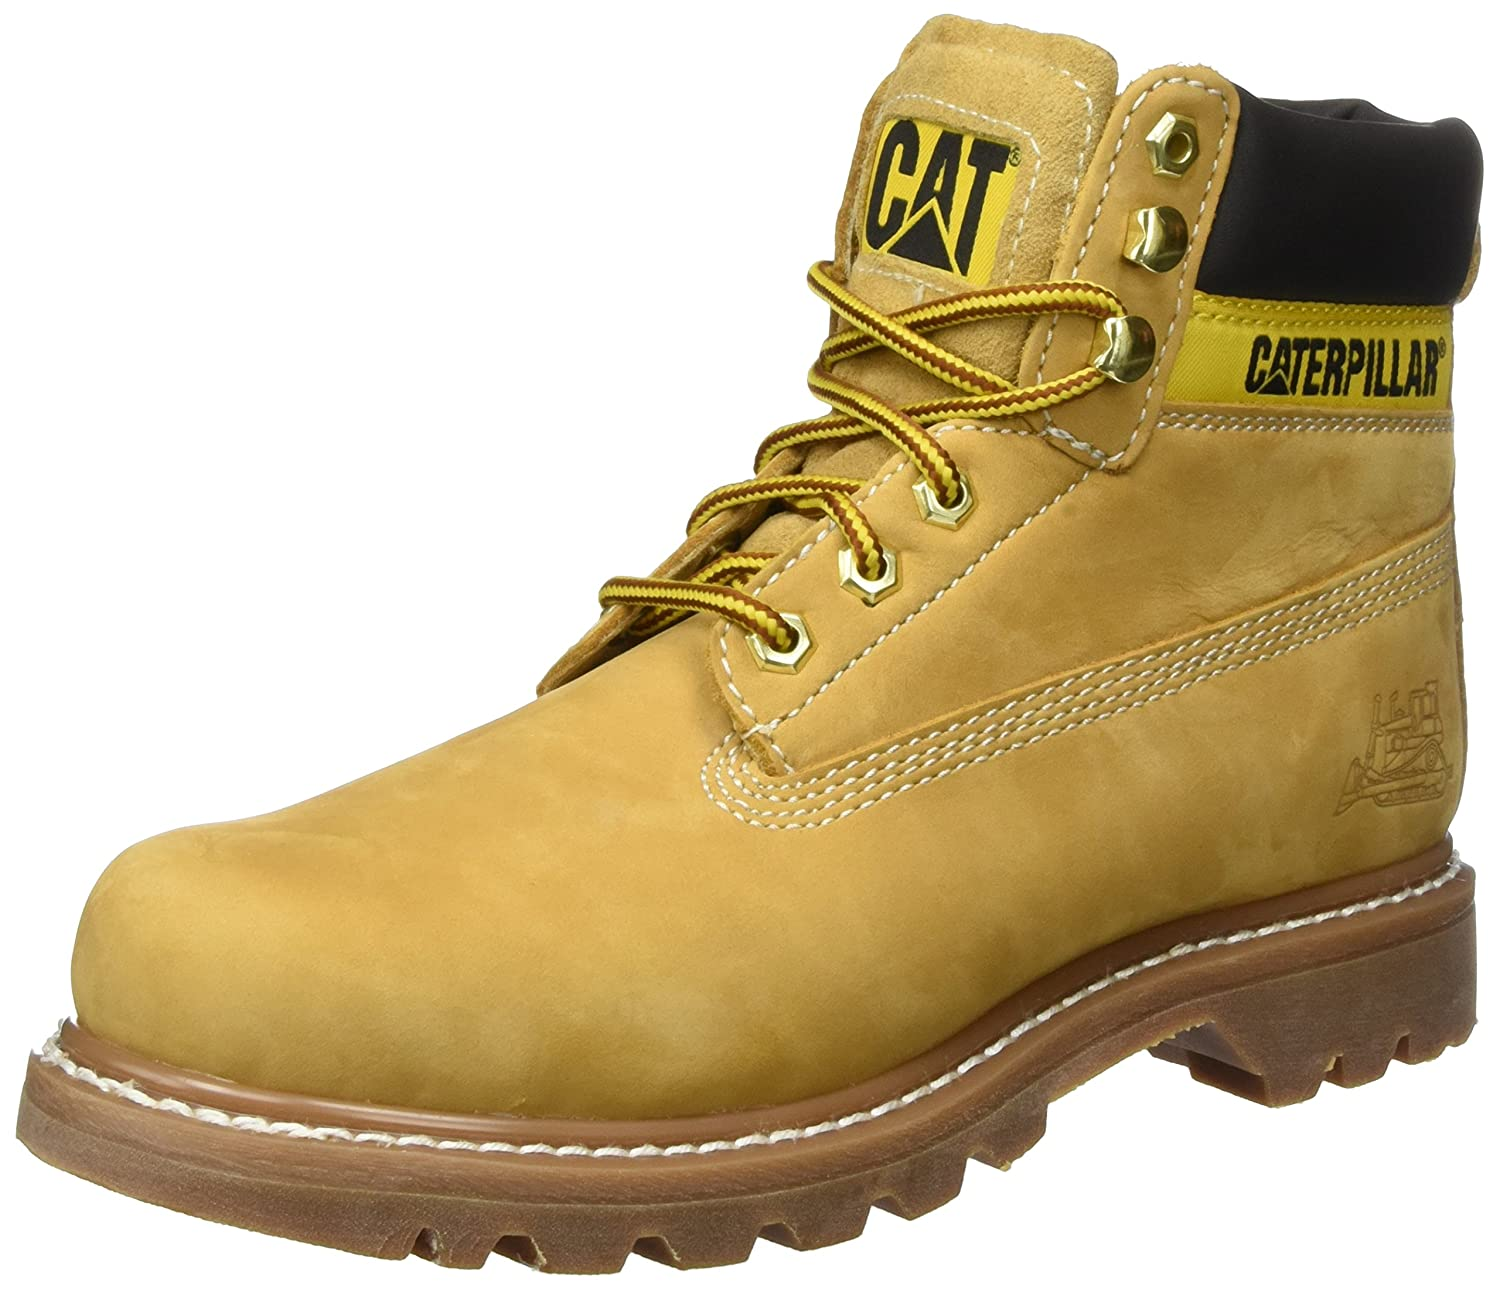 TALLA 42 EU. Caterpillar Colorado Honey, Botas para Hombre